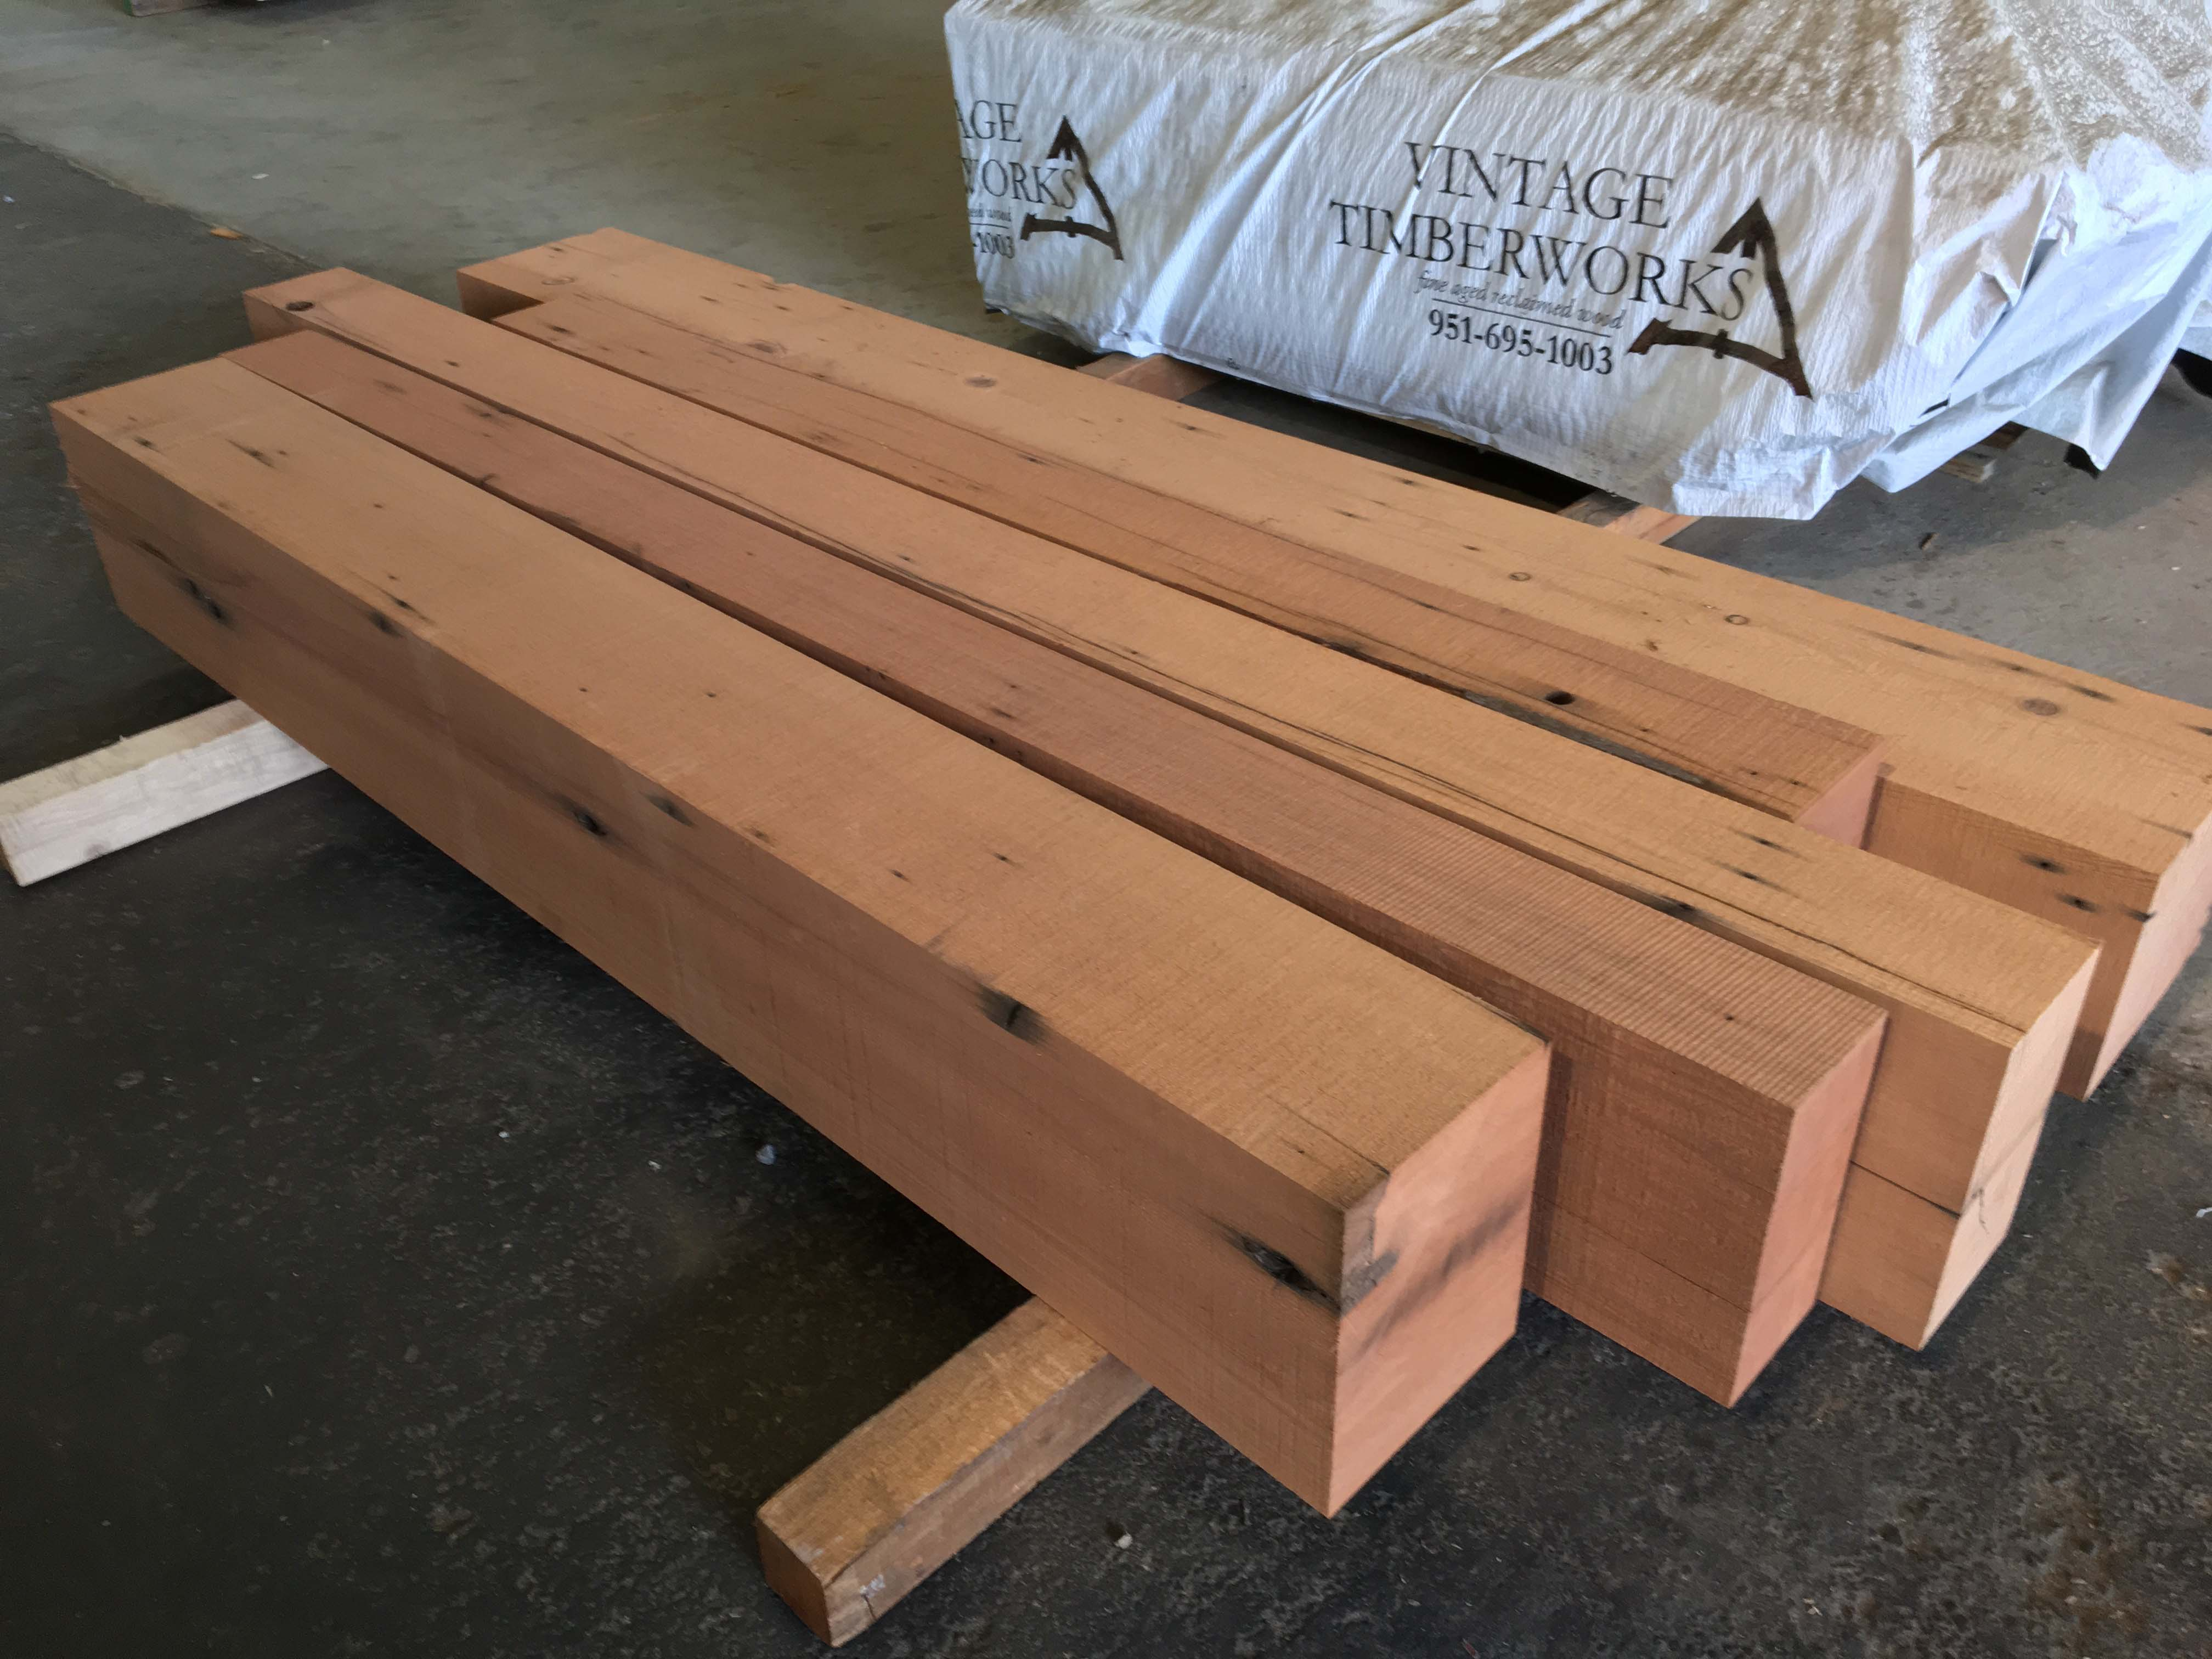 resawn redwood beams03 - Vintage Reclaimed Redwood